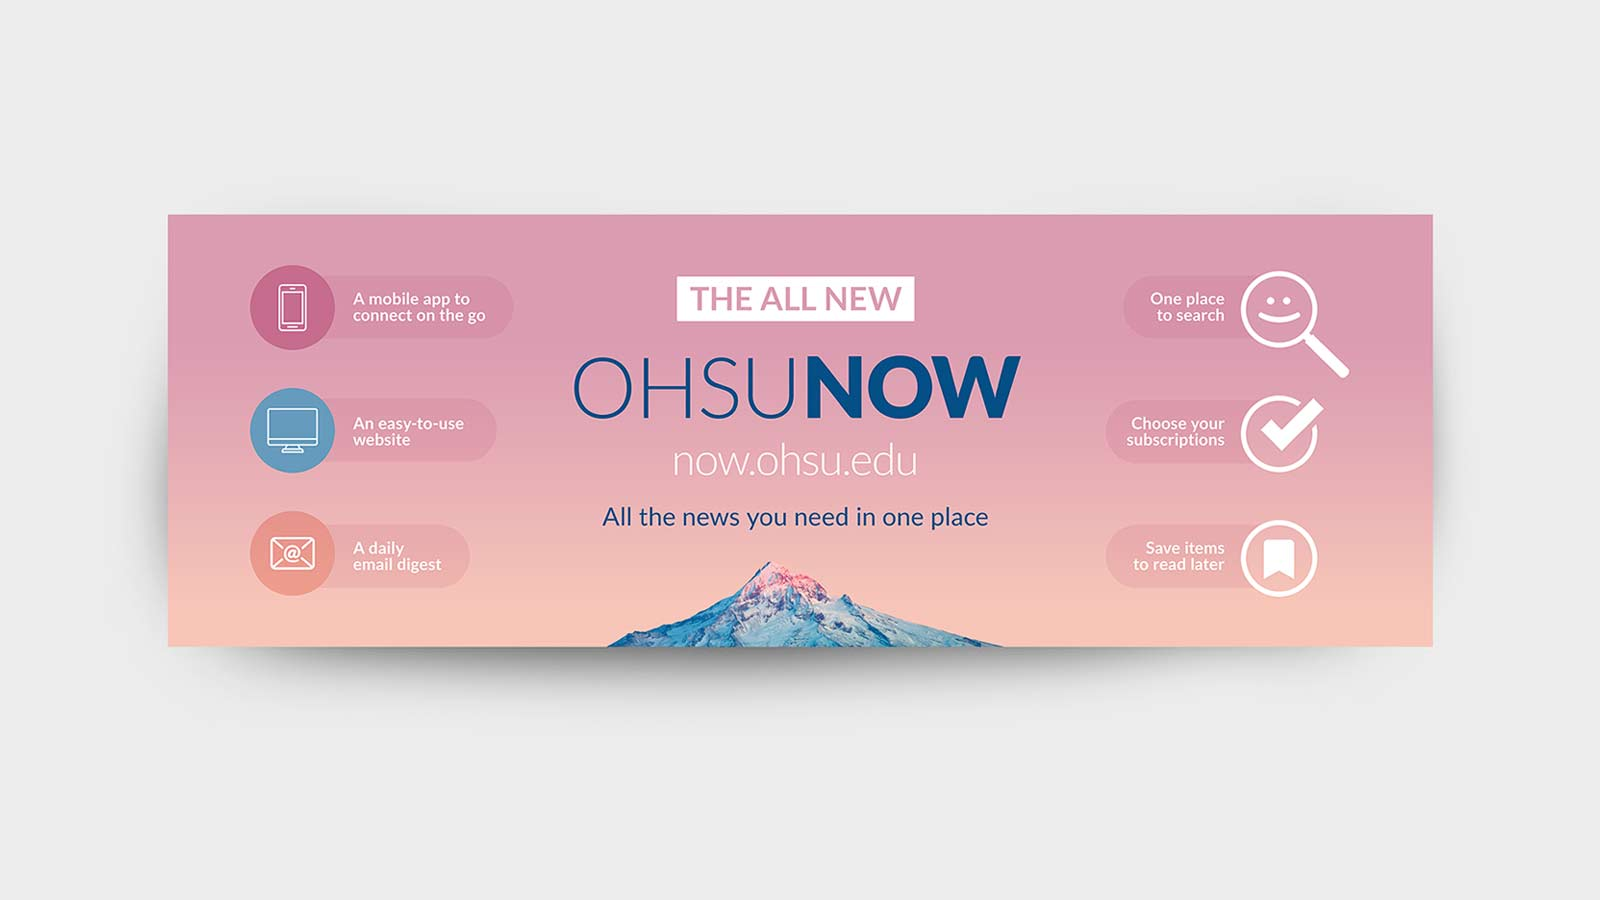 OHSU Now marketing campaign large banner design